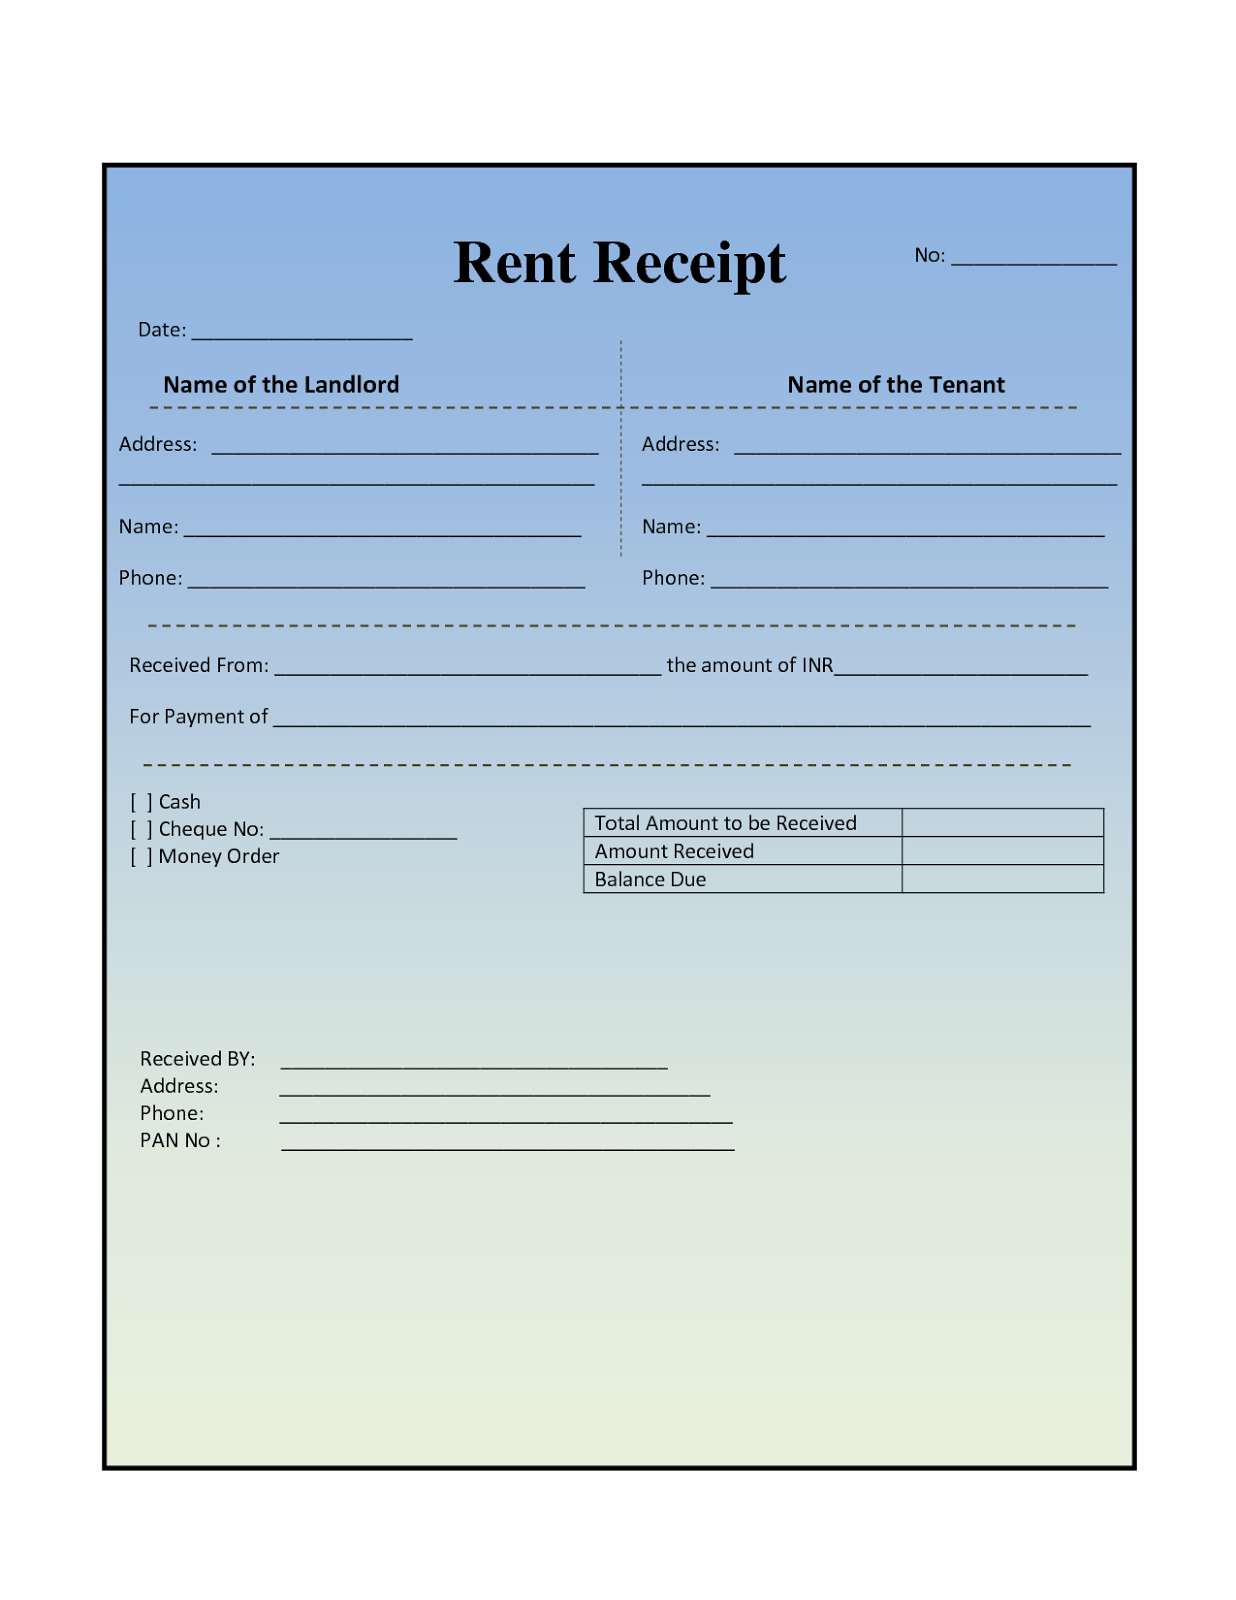 House Rental Invoice Template Excel Format Free Templates Formats Word Invoice Template Receipt Template Invoice Sample